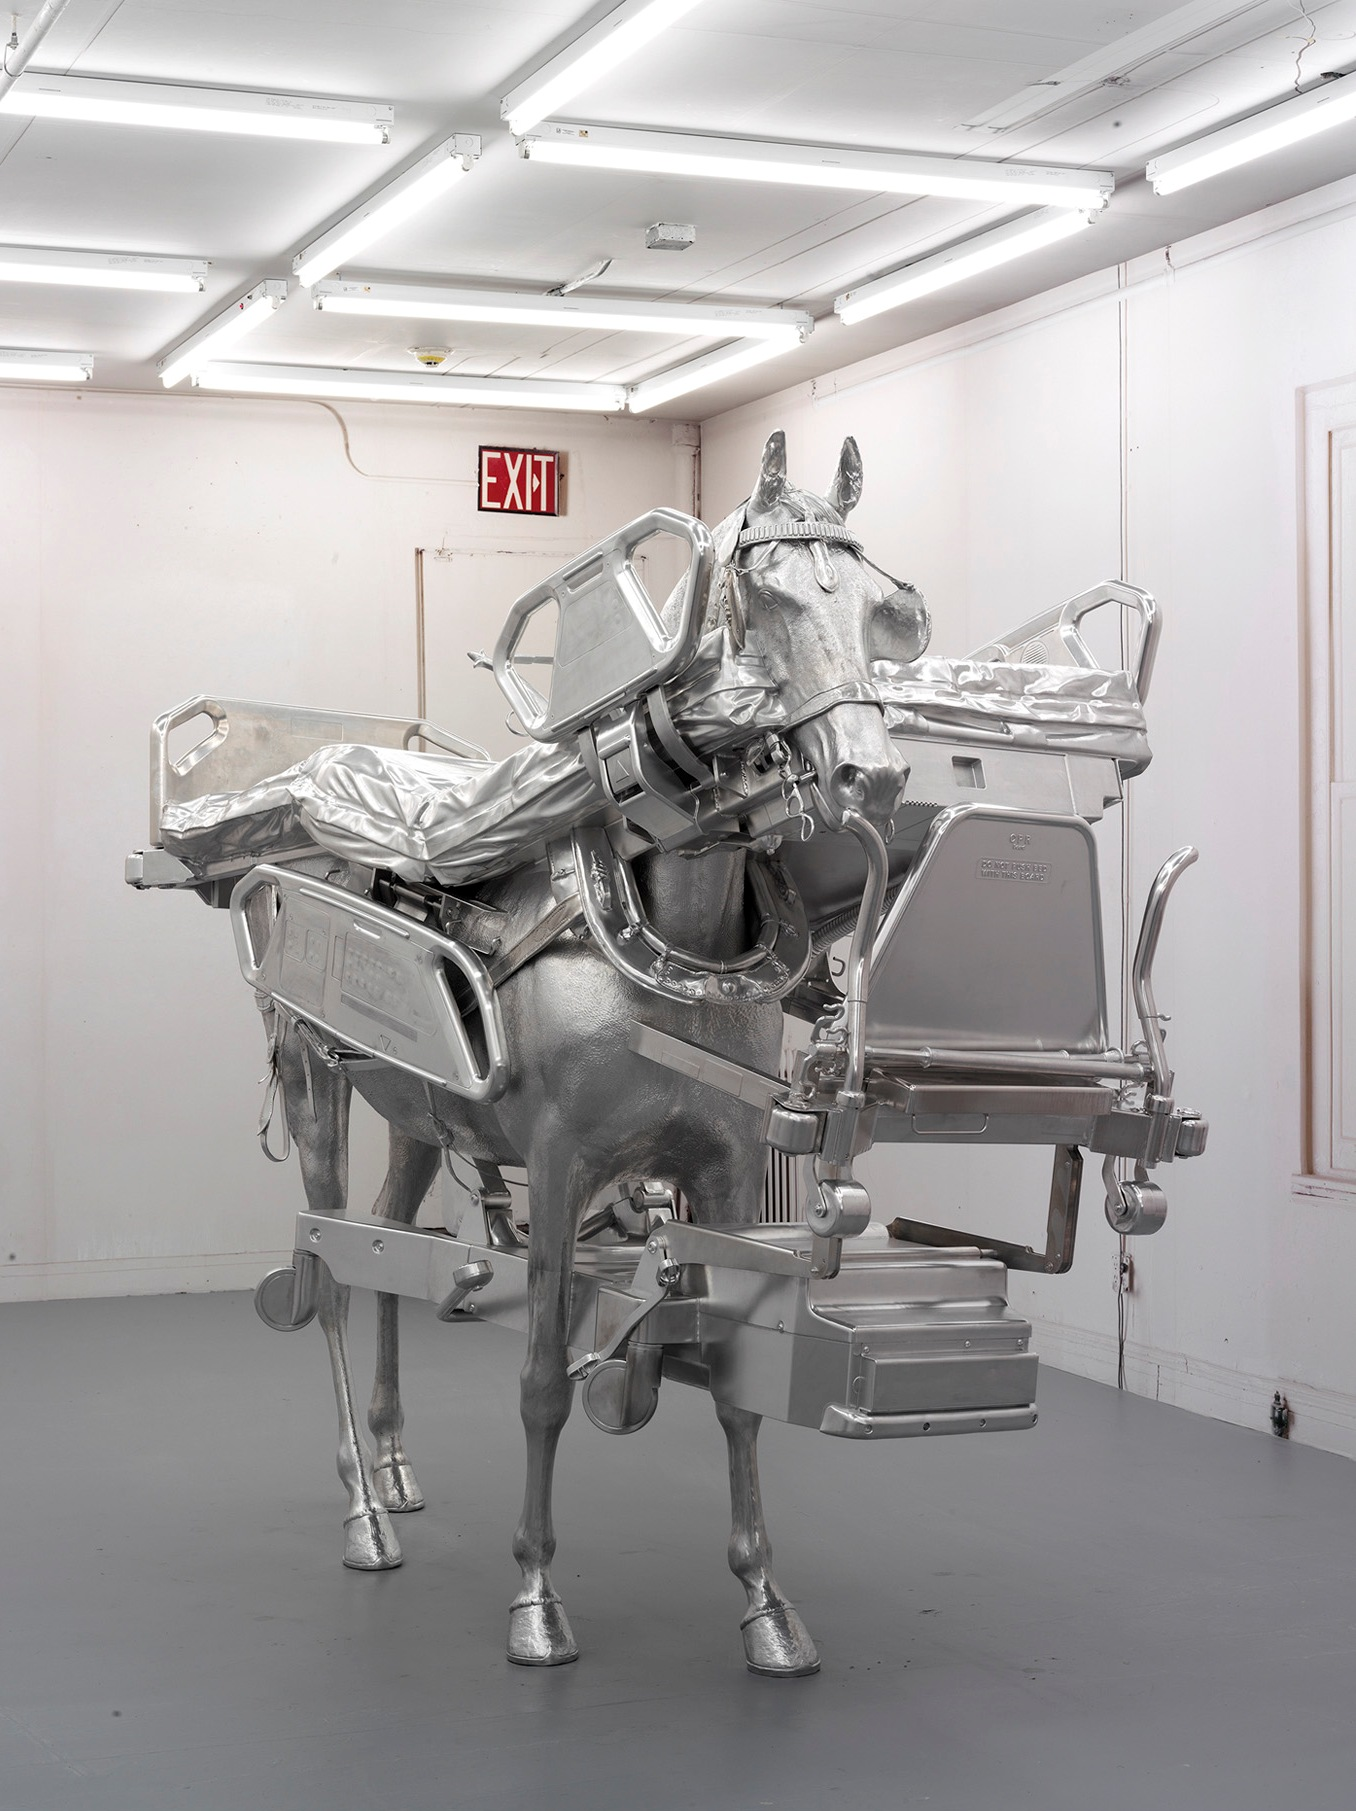 Urs Fischer, Horse/Bed, 2013, Milled aluminum, galavanized steel, screws, bolts, two component resin 85 7/8 x 103 9/16 x 43 3/4 inches (218.2 x 263.1 x 111.1 cm) Edition of 3 & 1 AP. © Urs Fischer. Courtesy dell'artista e Gagosian Gallery. Foto: Stefan Altenburger